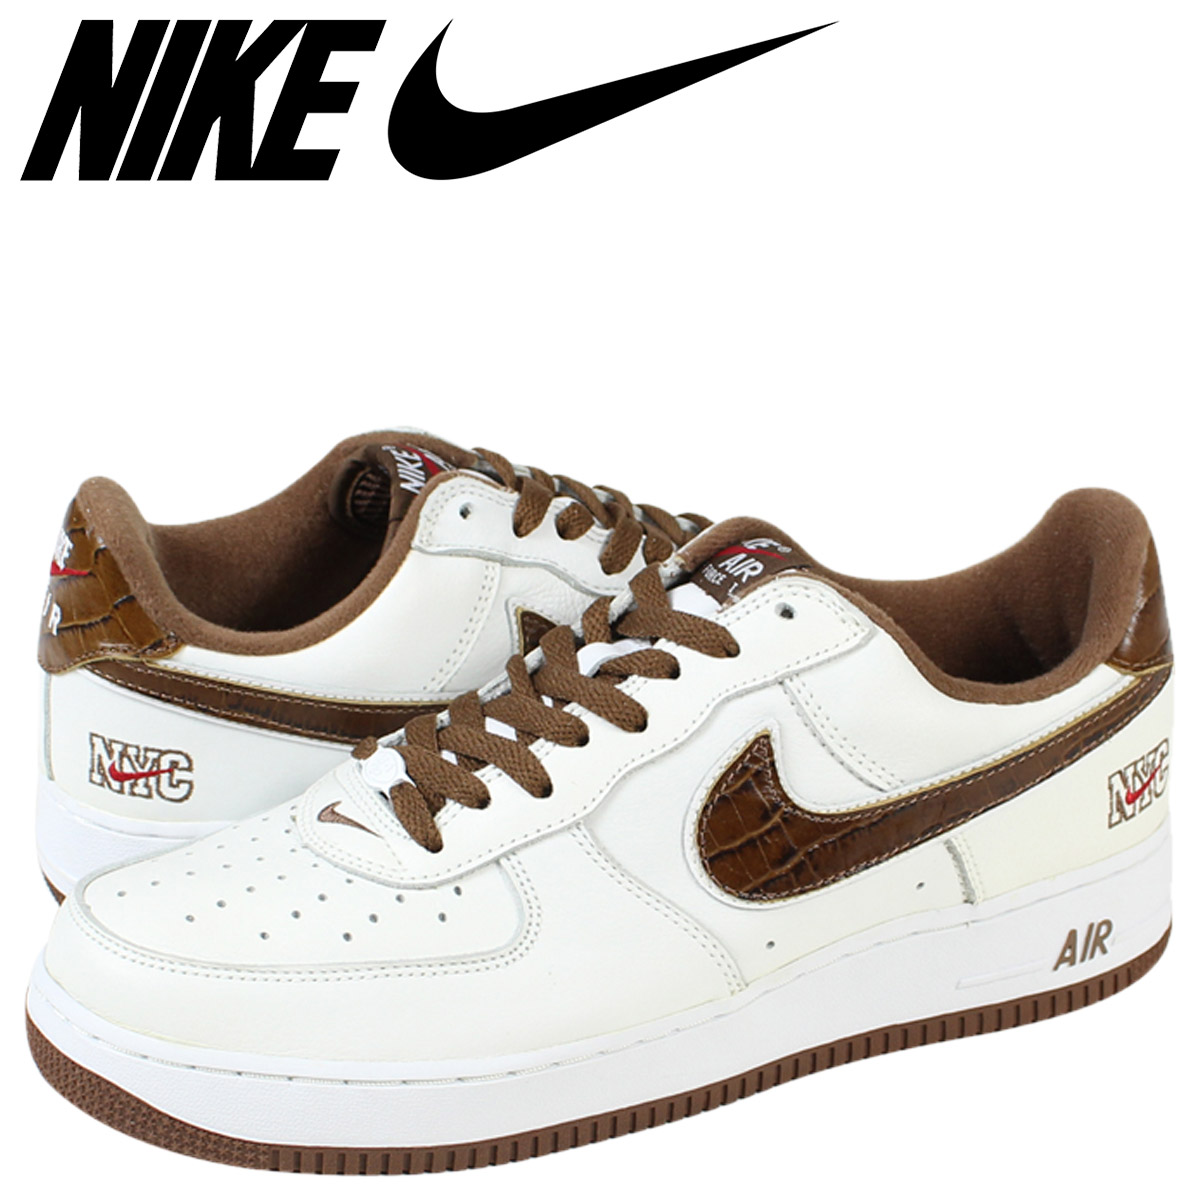 low priced af7bd 838eb SOLD OUT NIKE Nike Air Force sneakers AIR FORCE 1 LOW NYC air force 1 Lo  306509 - 121 white mens